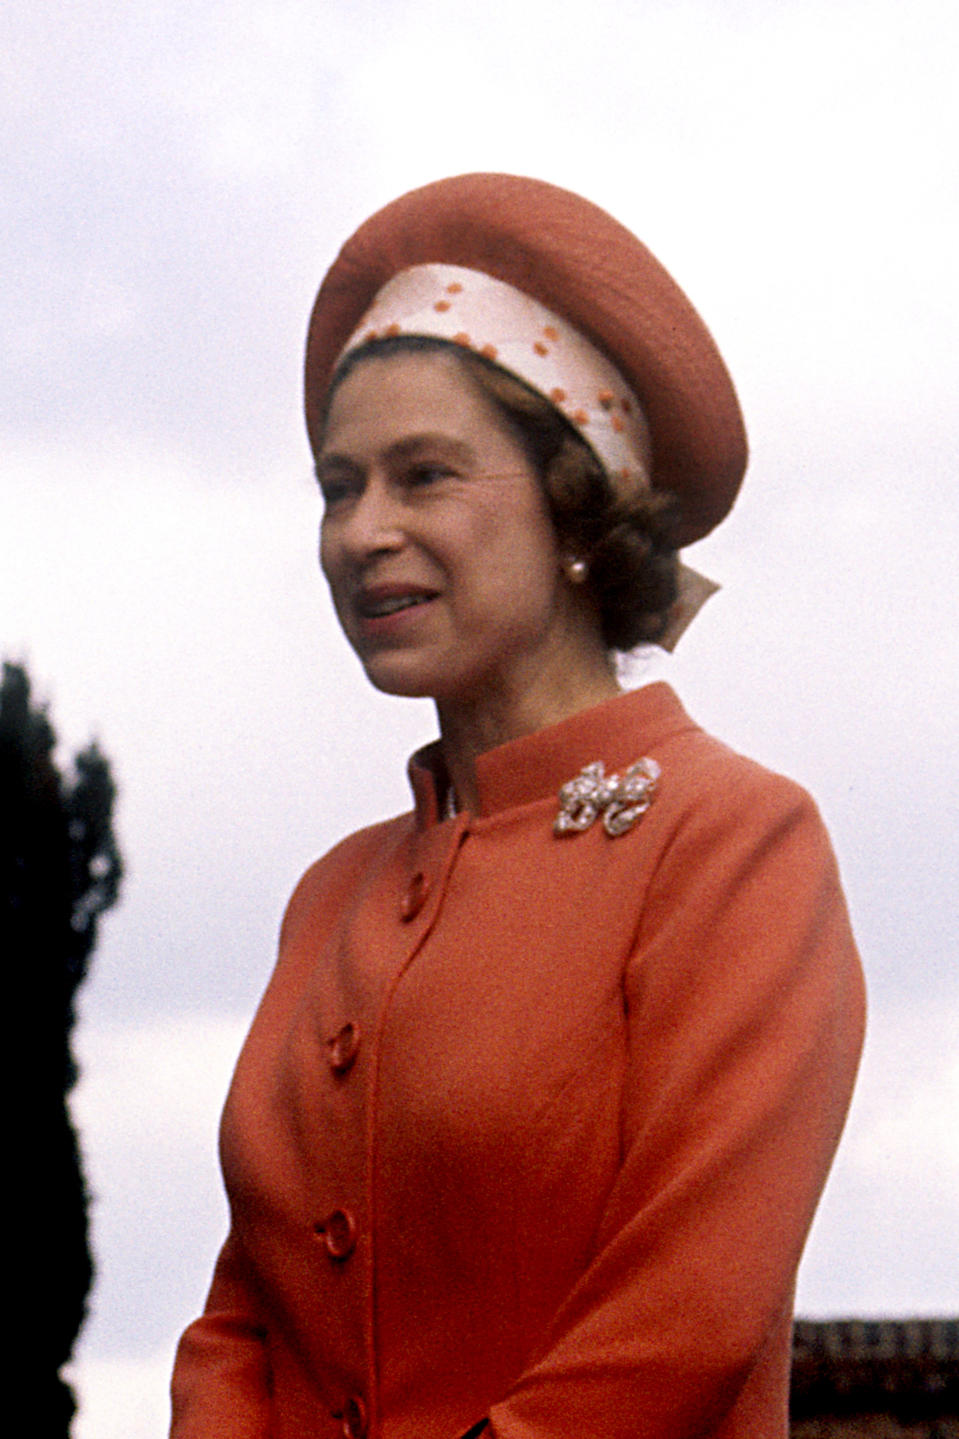 Queen Elizabeth II during a visit by American President Richard Nixon and his wife Pat Nixon, at Chequers, the official country residence of the Prime Minister in Buckinghamshire.